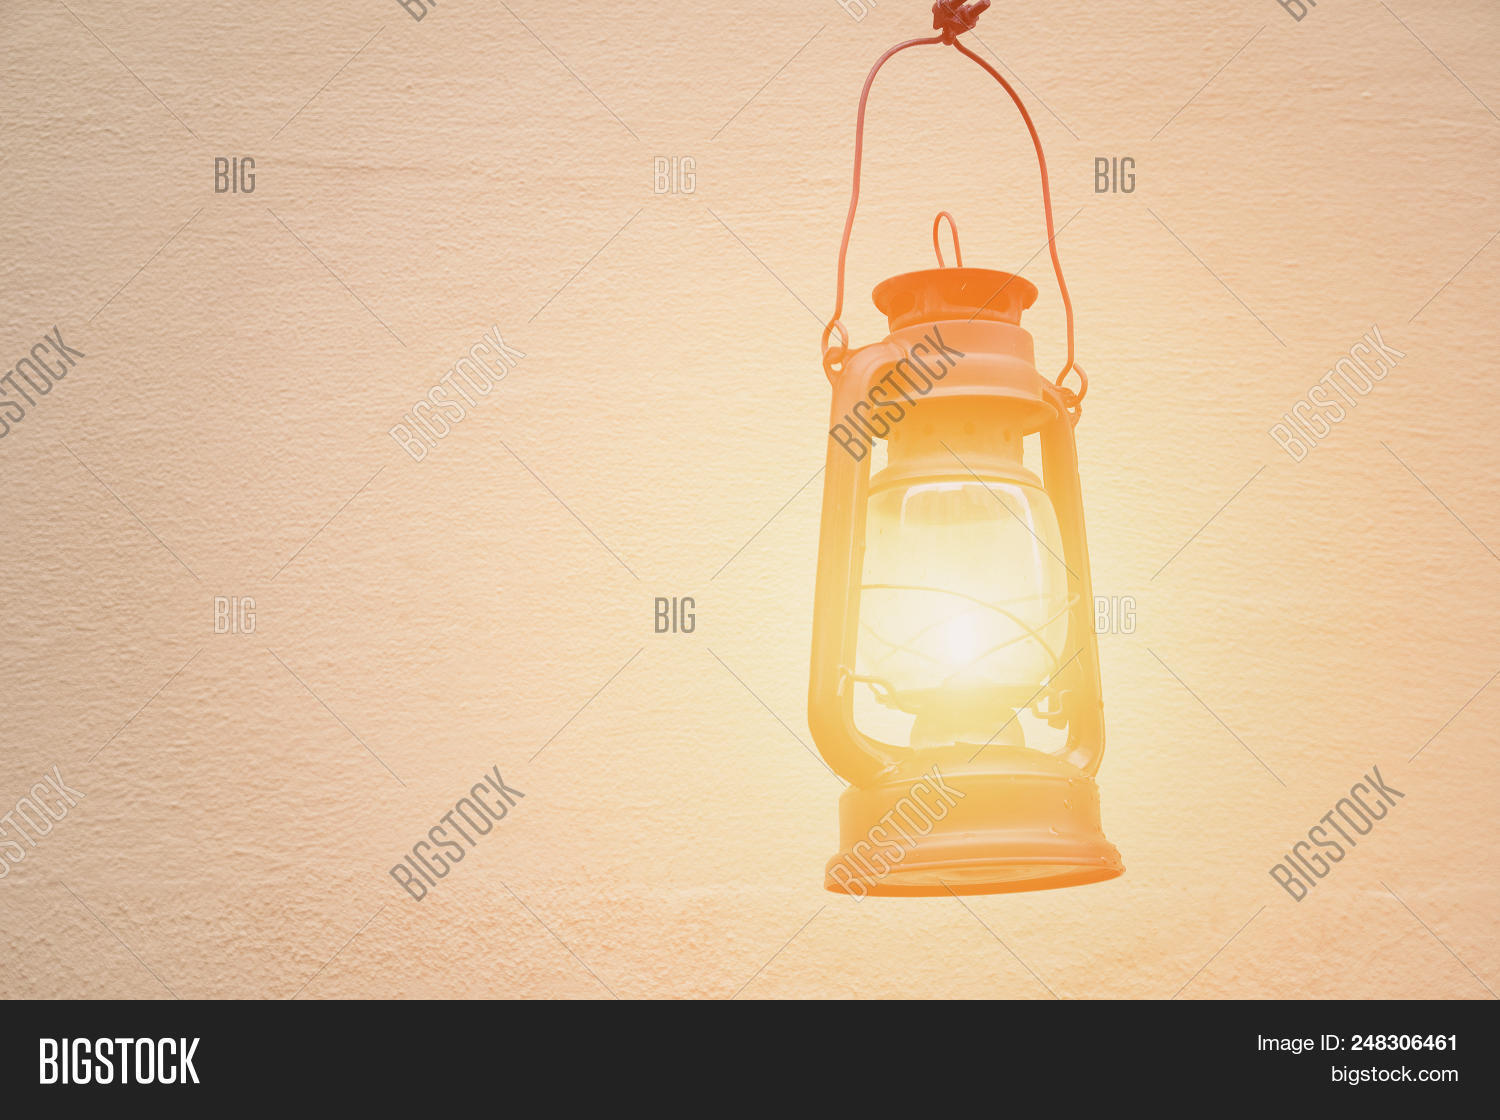 antern,antique,background,decoration,design,dusty,equipment,flame,gas,glass,glow,handle,kerosene,lamp,lit,metal,object,oil,old,retro,rustic,vintage,wall,white